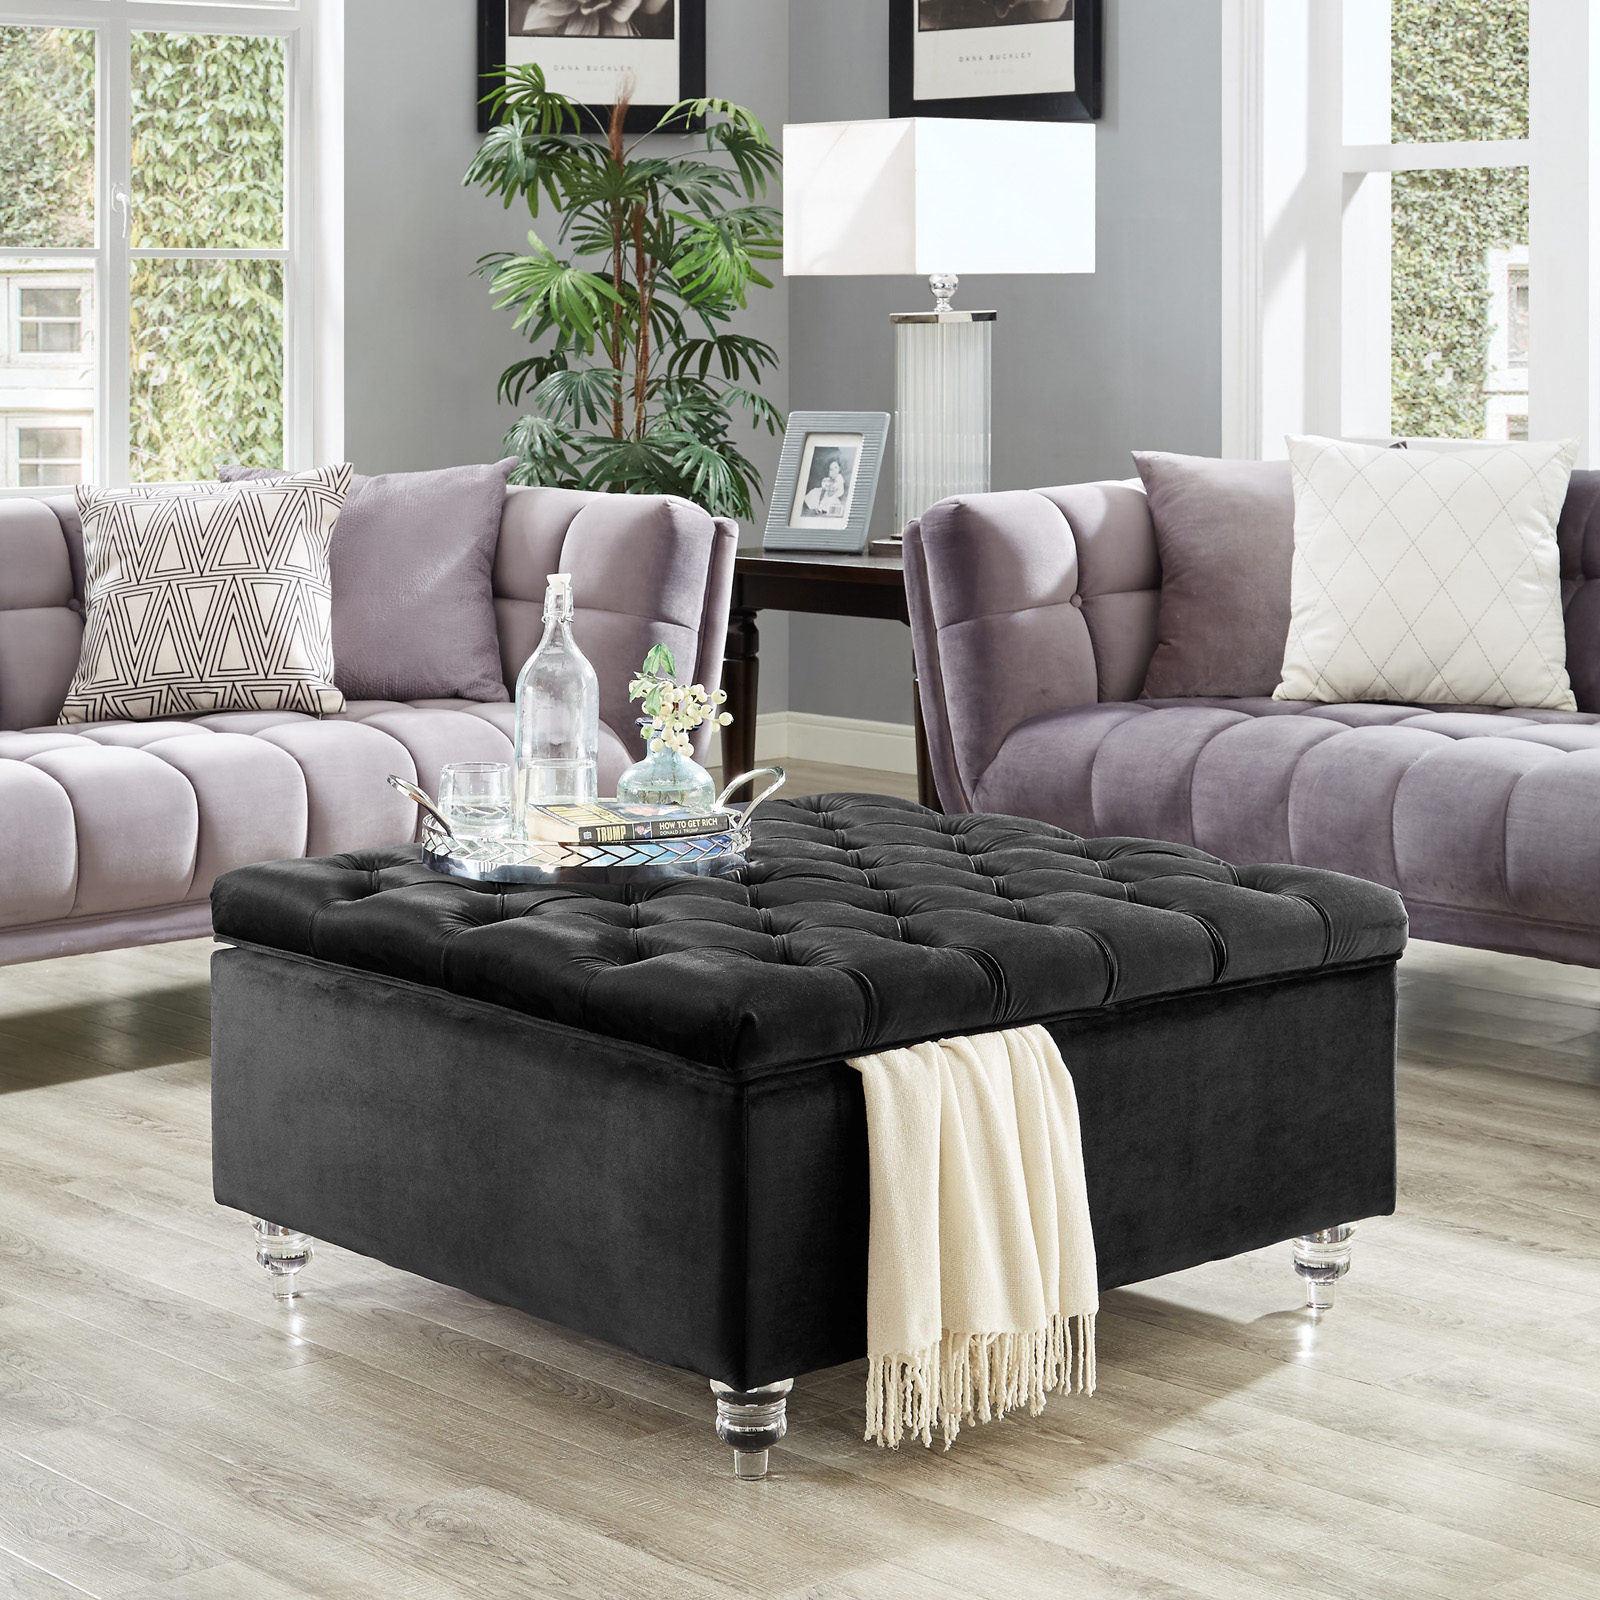 Inspired Home Robert Square Coffee Table Storage Ottoman